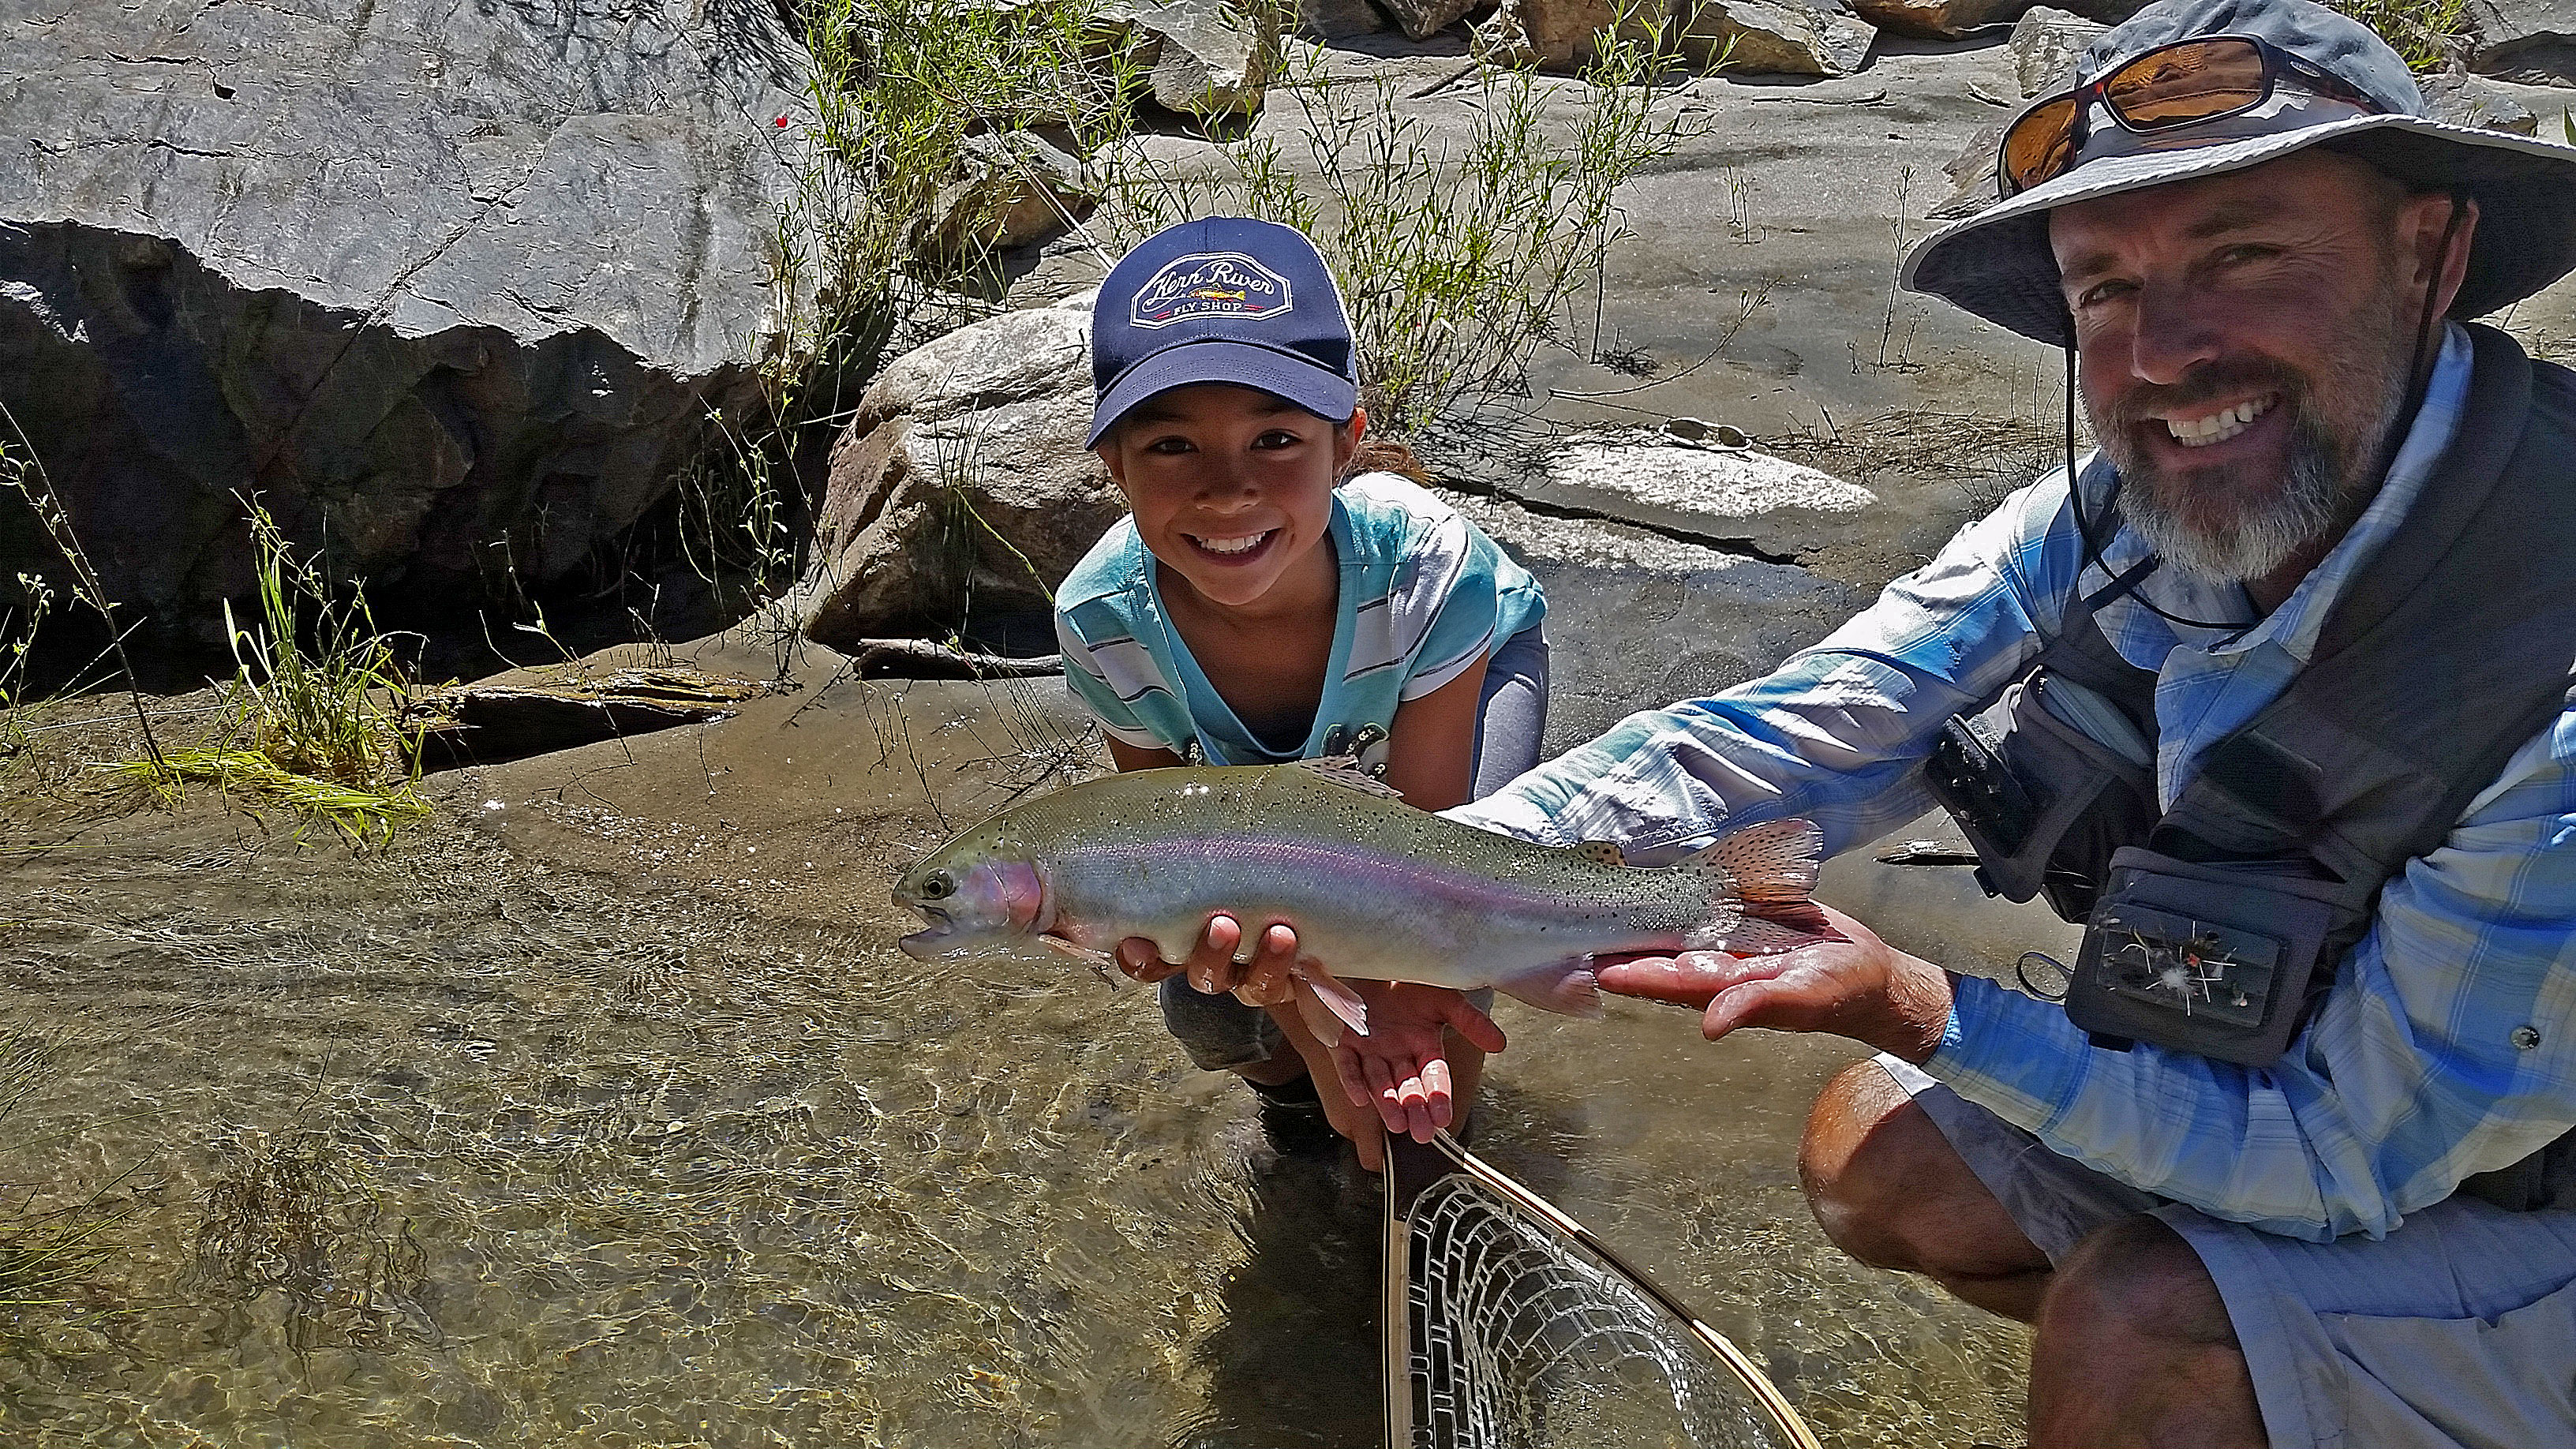 Kern river fly fishing report kern river fly fishing reports for Kern river fishing report